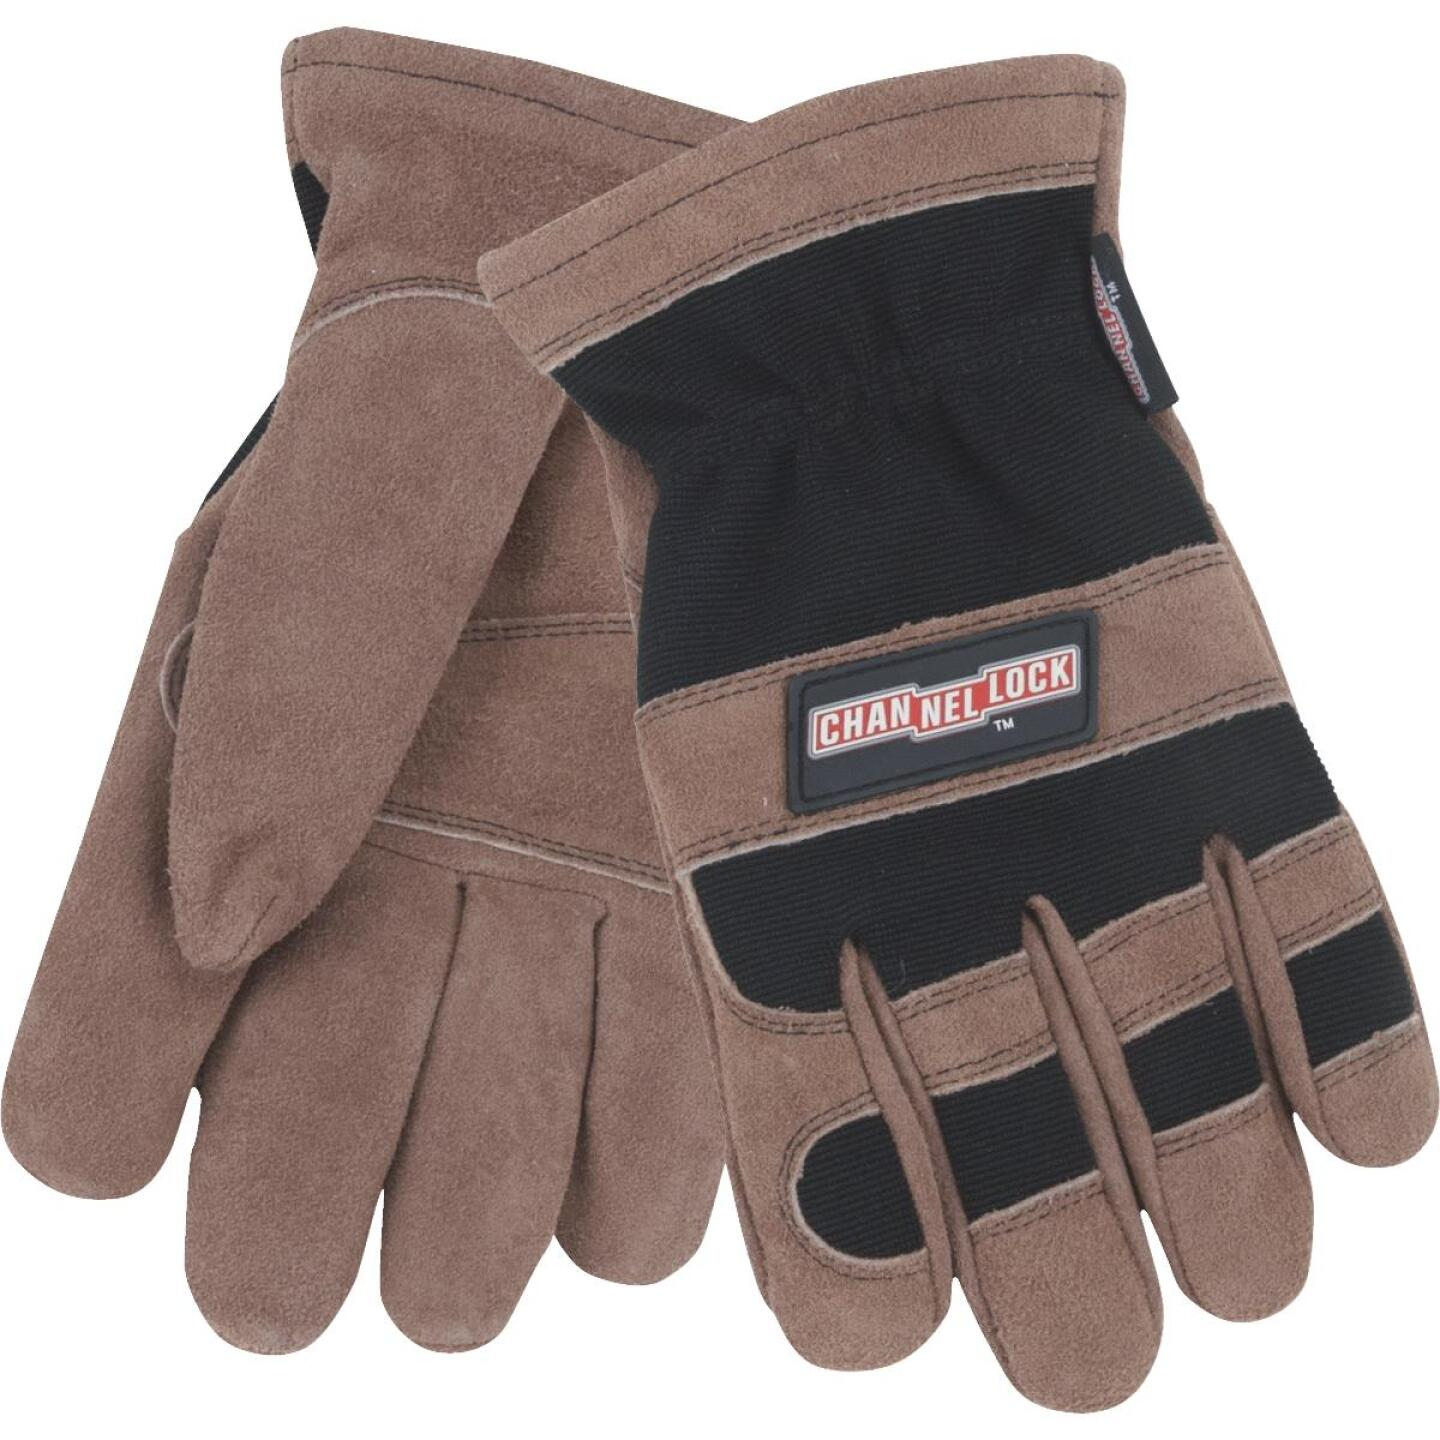 Channellock Men's Large Leather Winter Work Glove Image 1